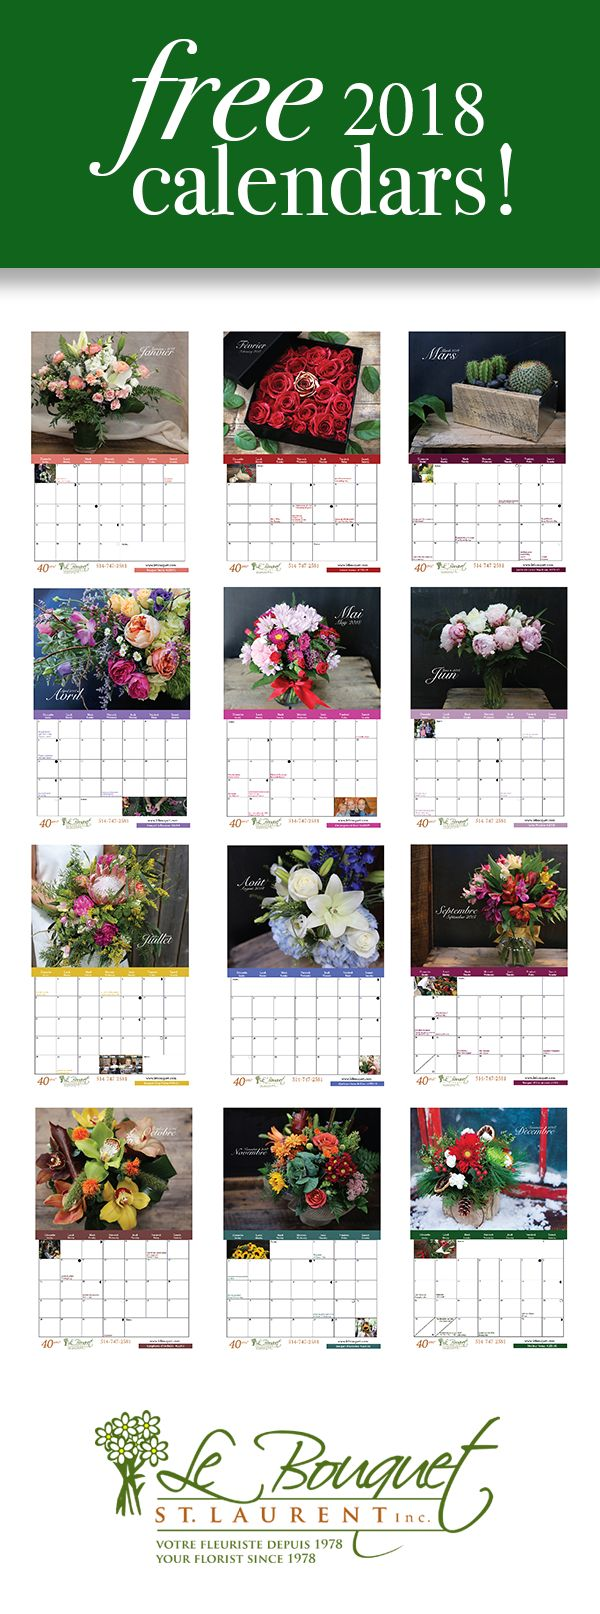 Free downloadable calendars from Montreal based flower shop Le Bouquet St Laurent. Two different calendars!